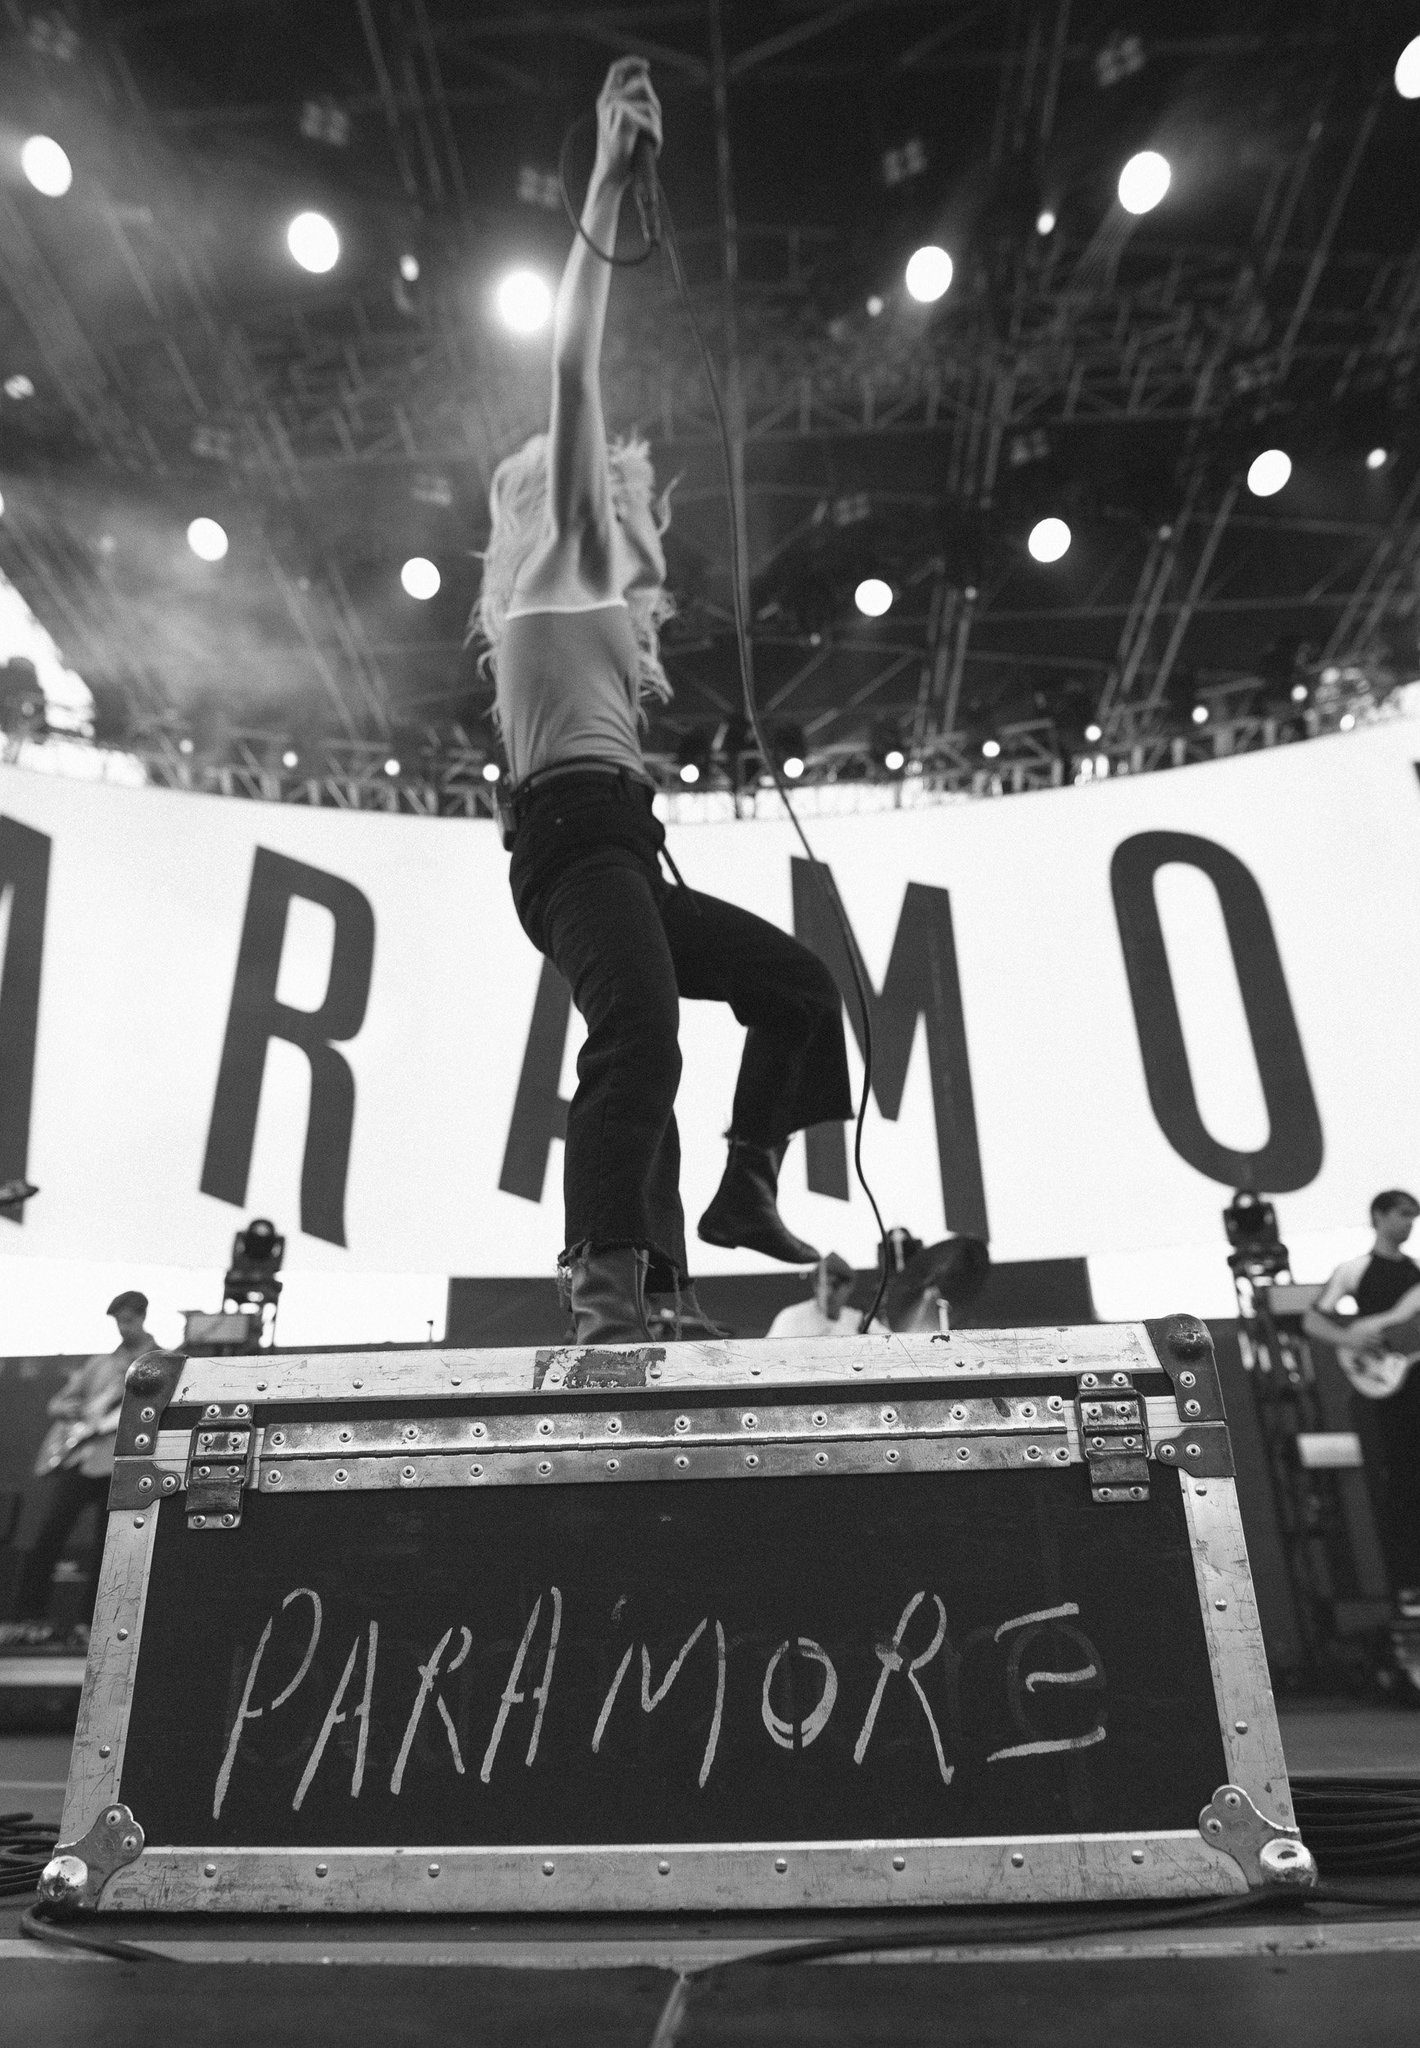 ready for more shows. thanks @elmakias for these photos from the @kroq Weener Roast. https://t.co/z6gl7sSM7O